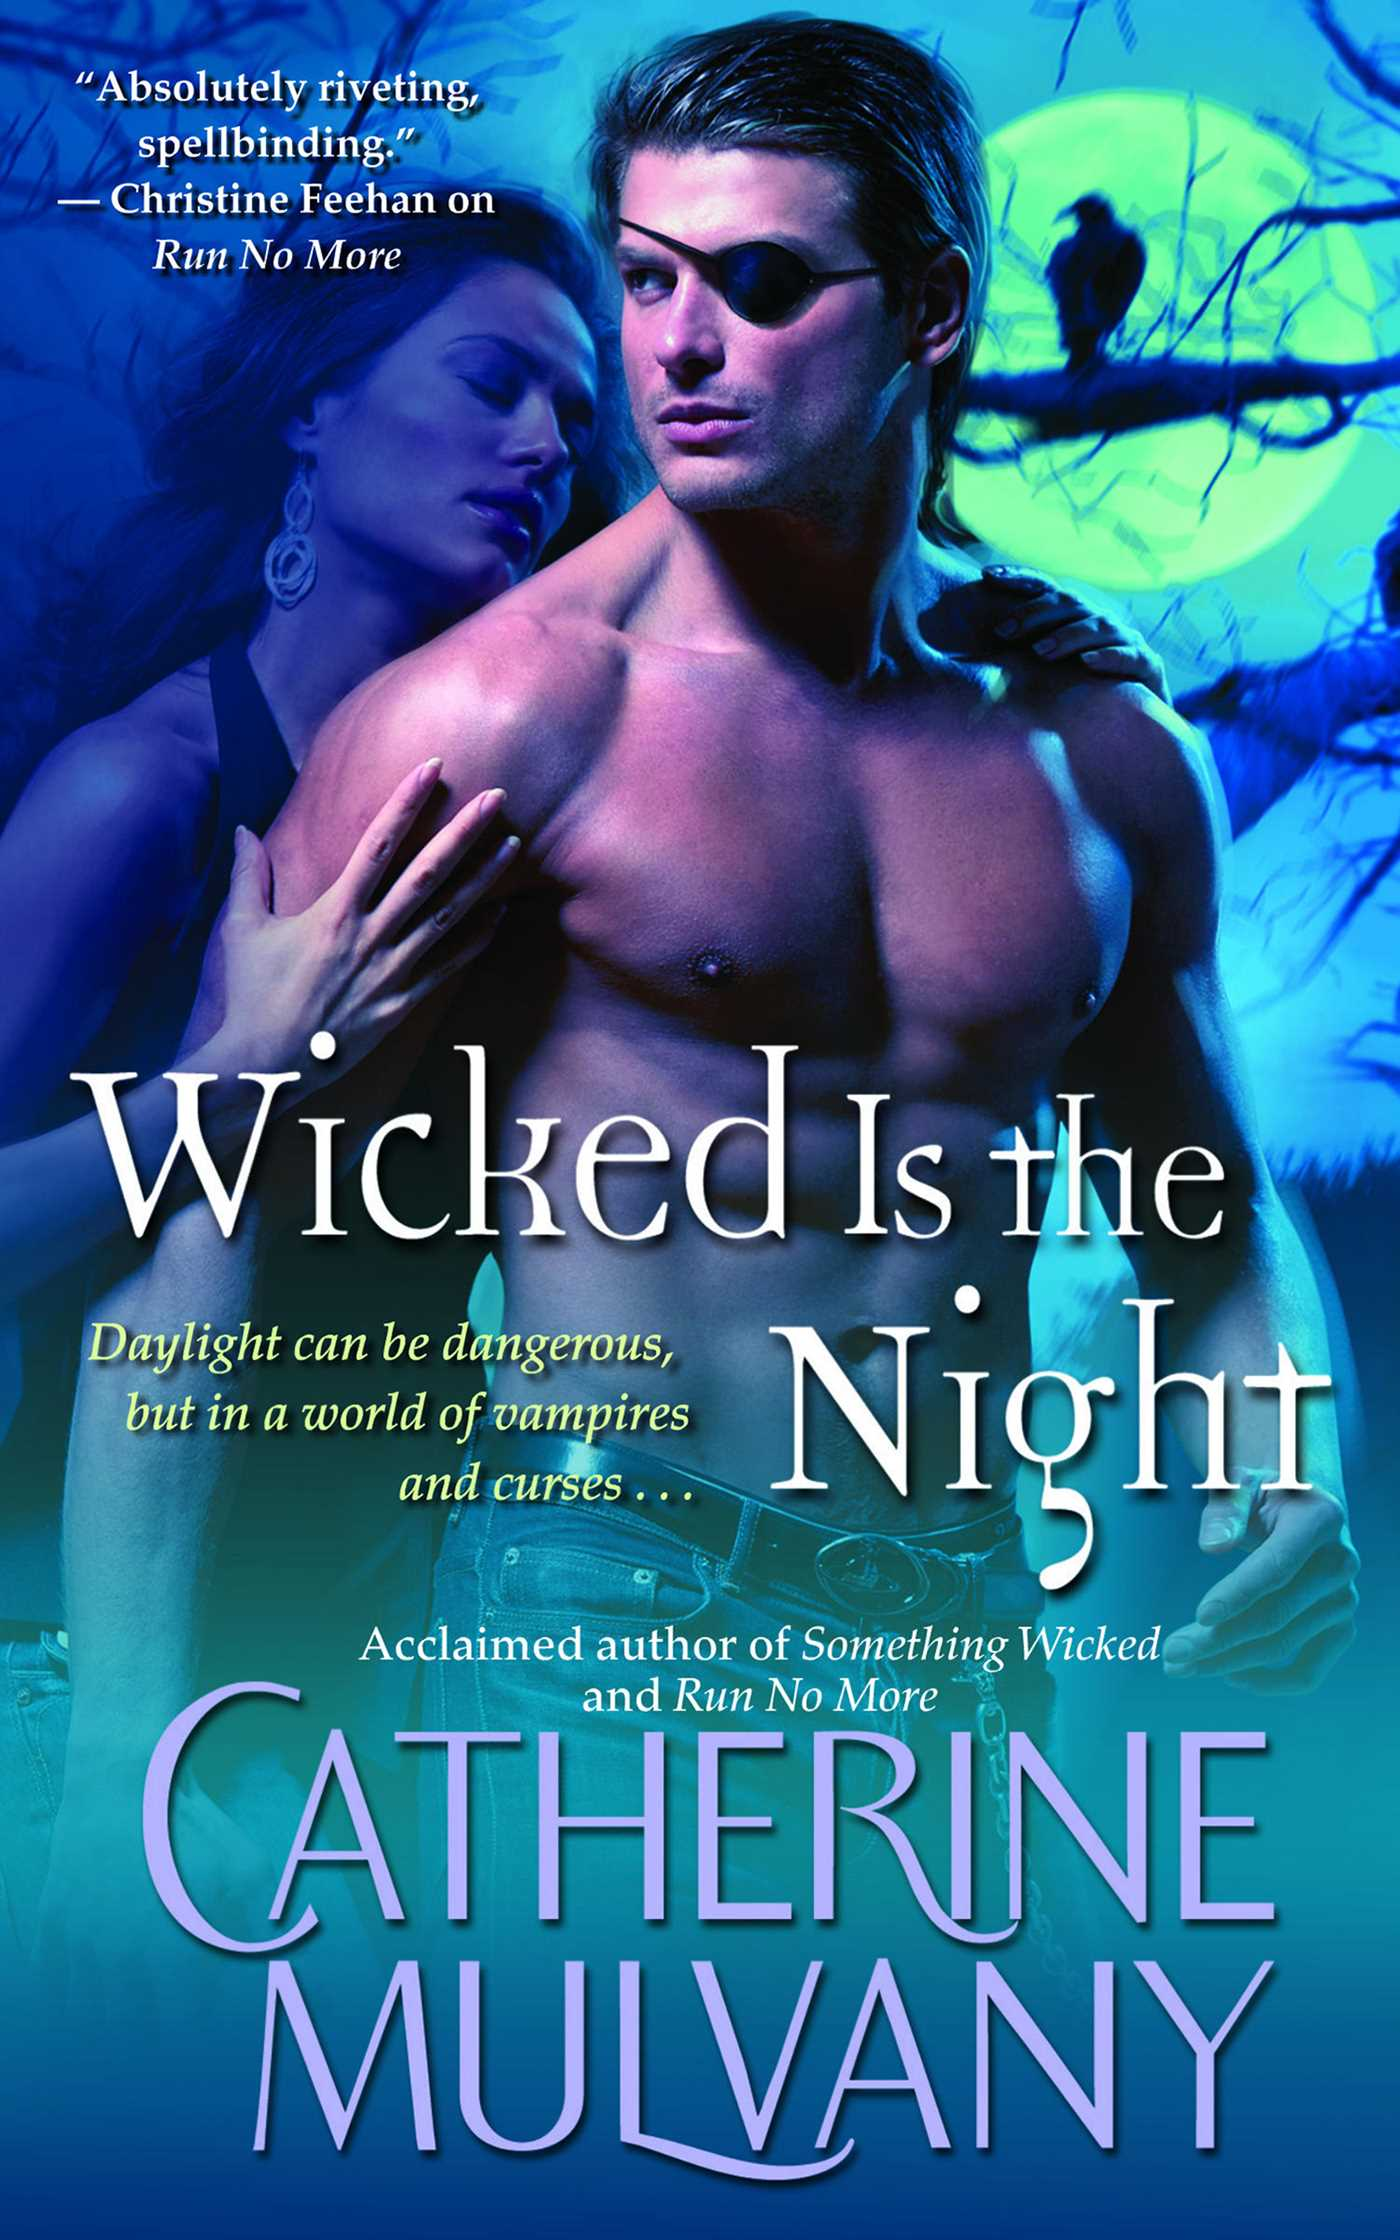 Wicked-is-the-night-9781416594116_hr